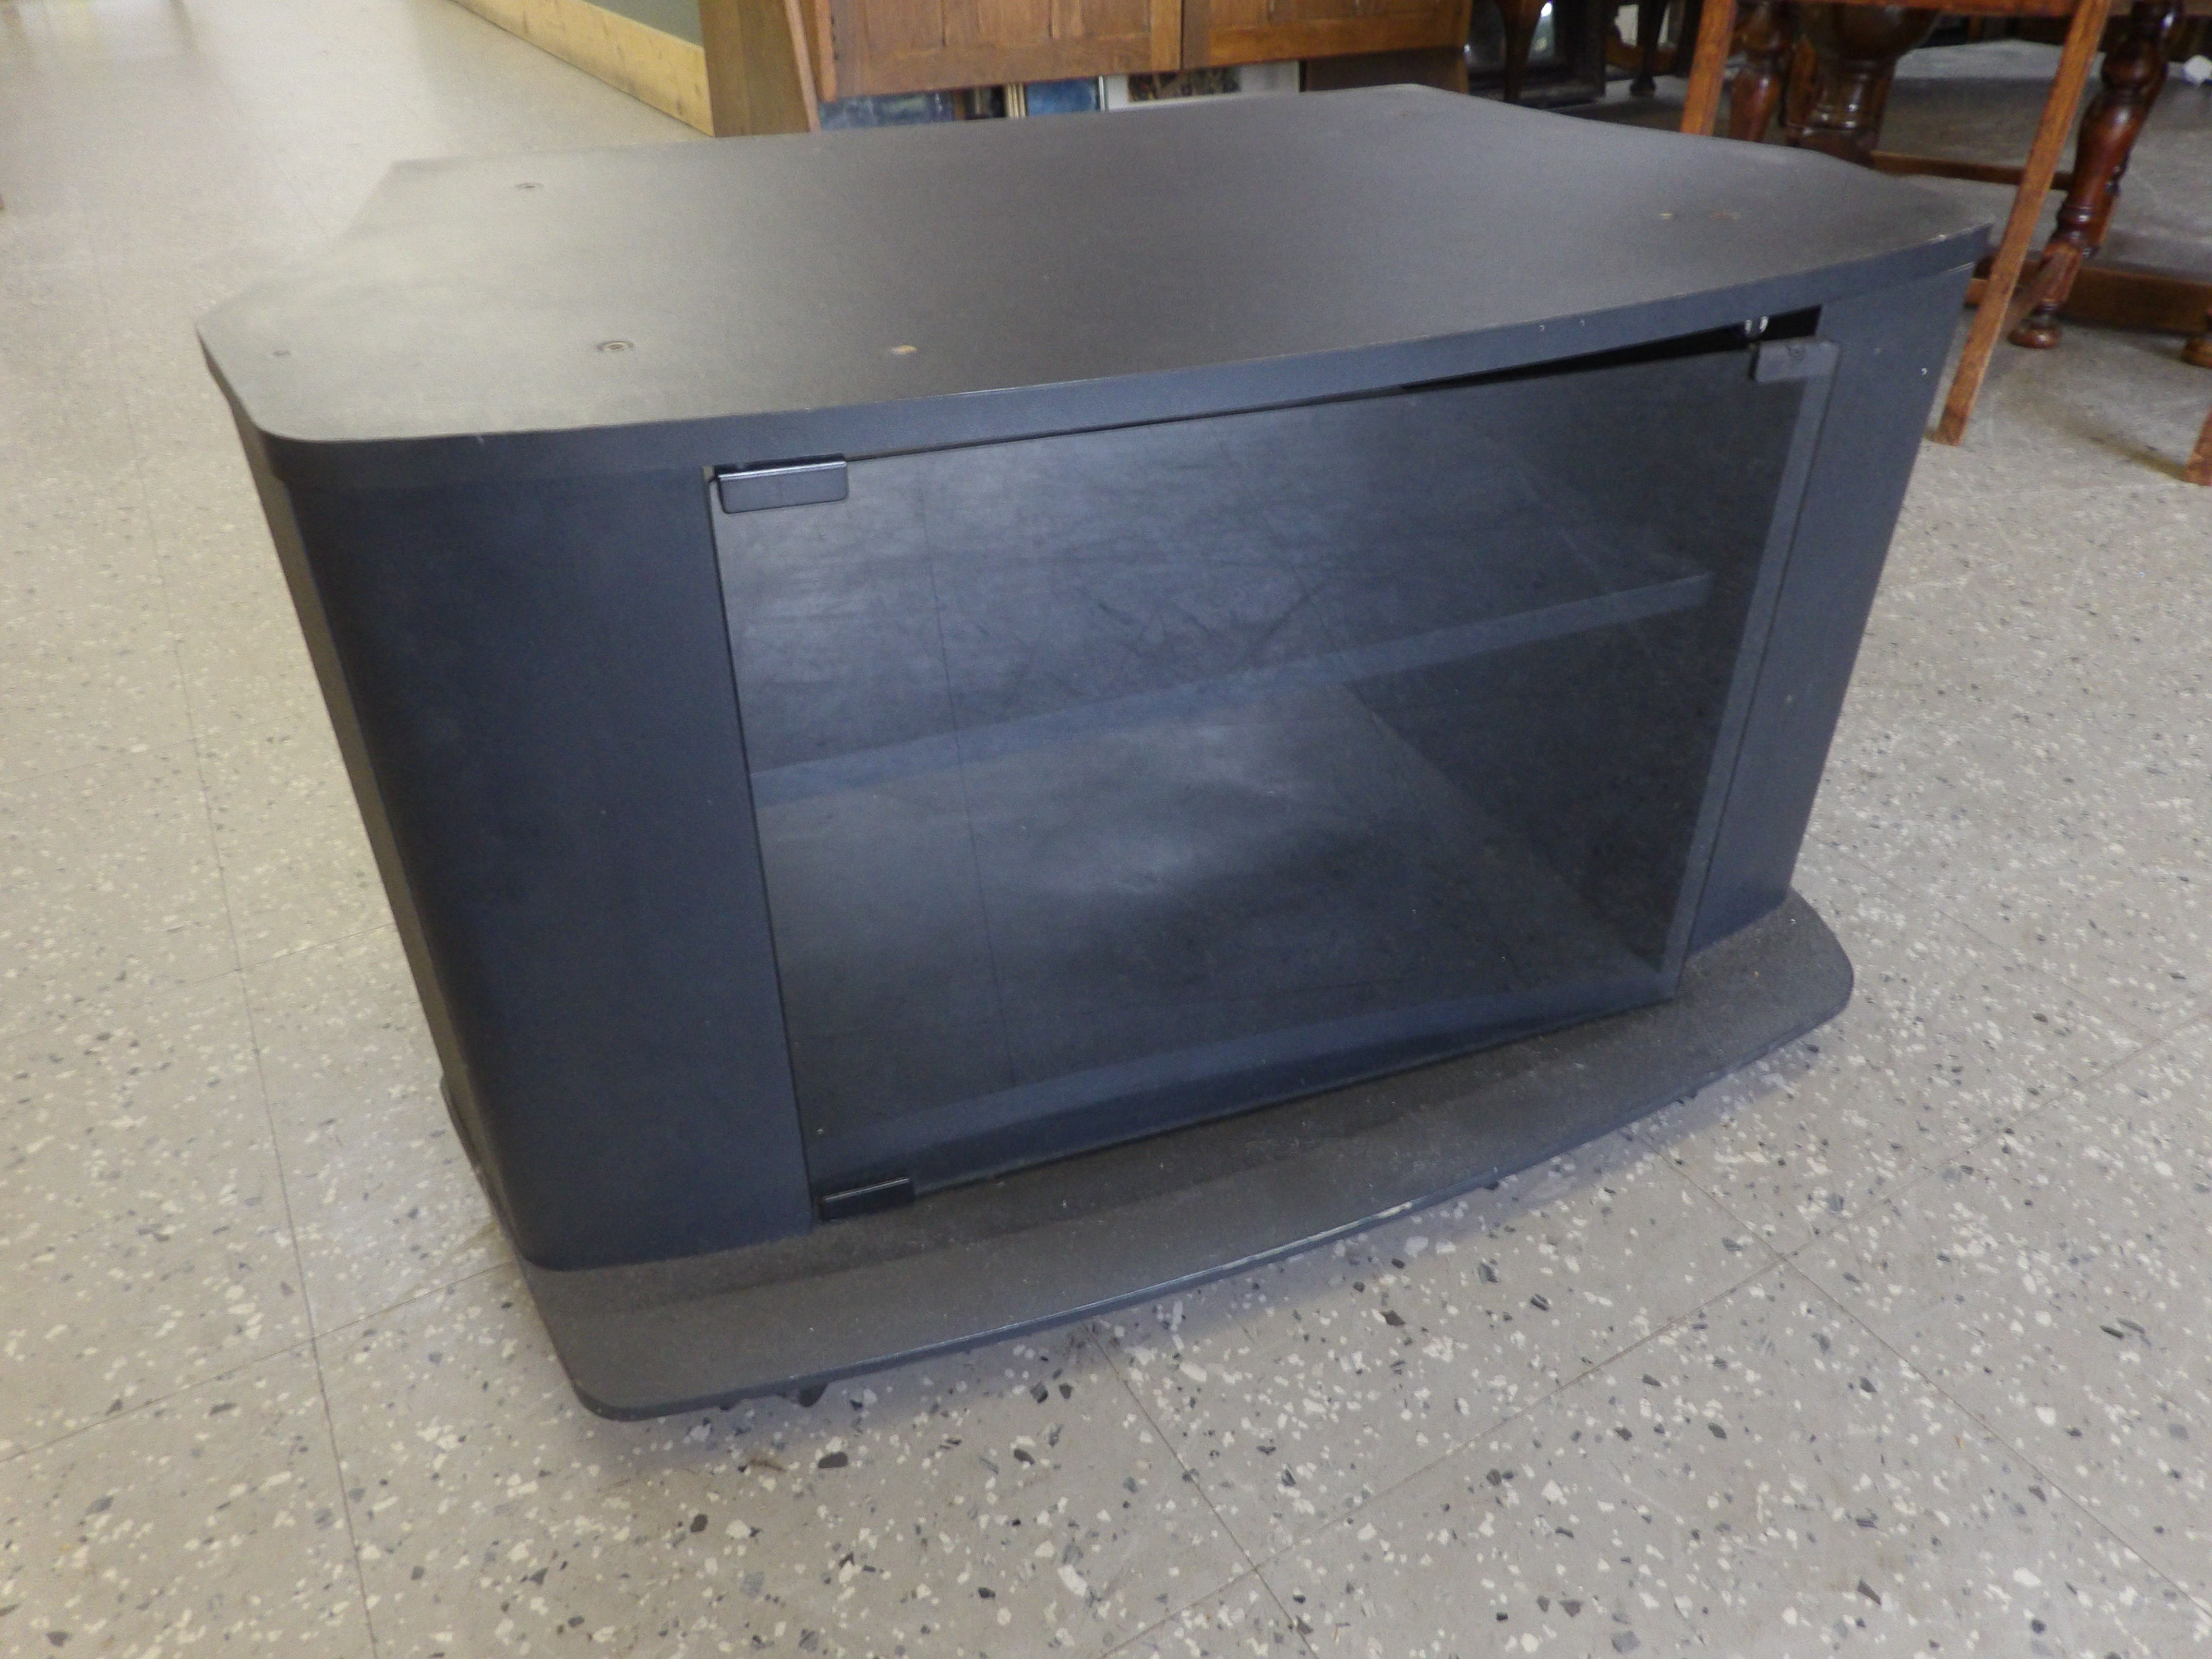 2017 Glass Fronted Tv Cabinet Inside Glass Fronted Television Cabinet With Shelves —— Good Condition (Gallery 15 of 20)